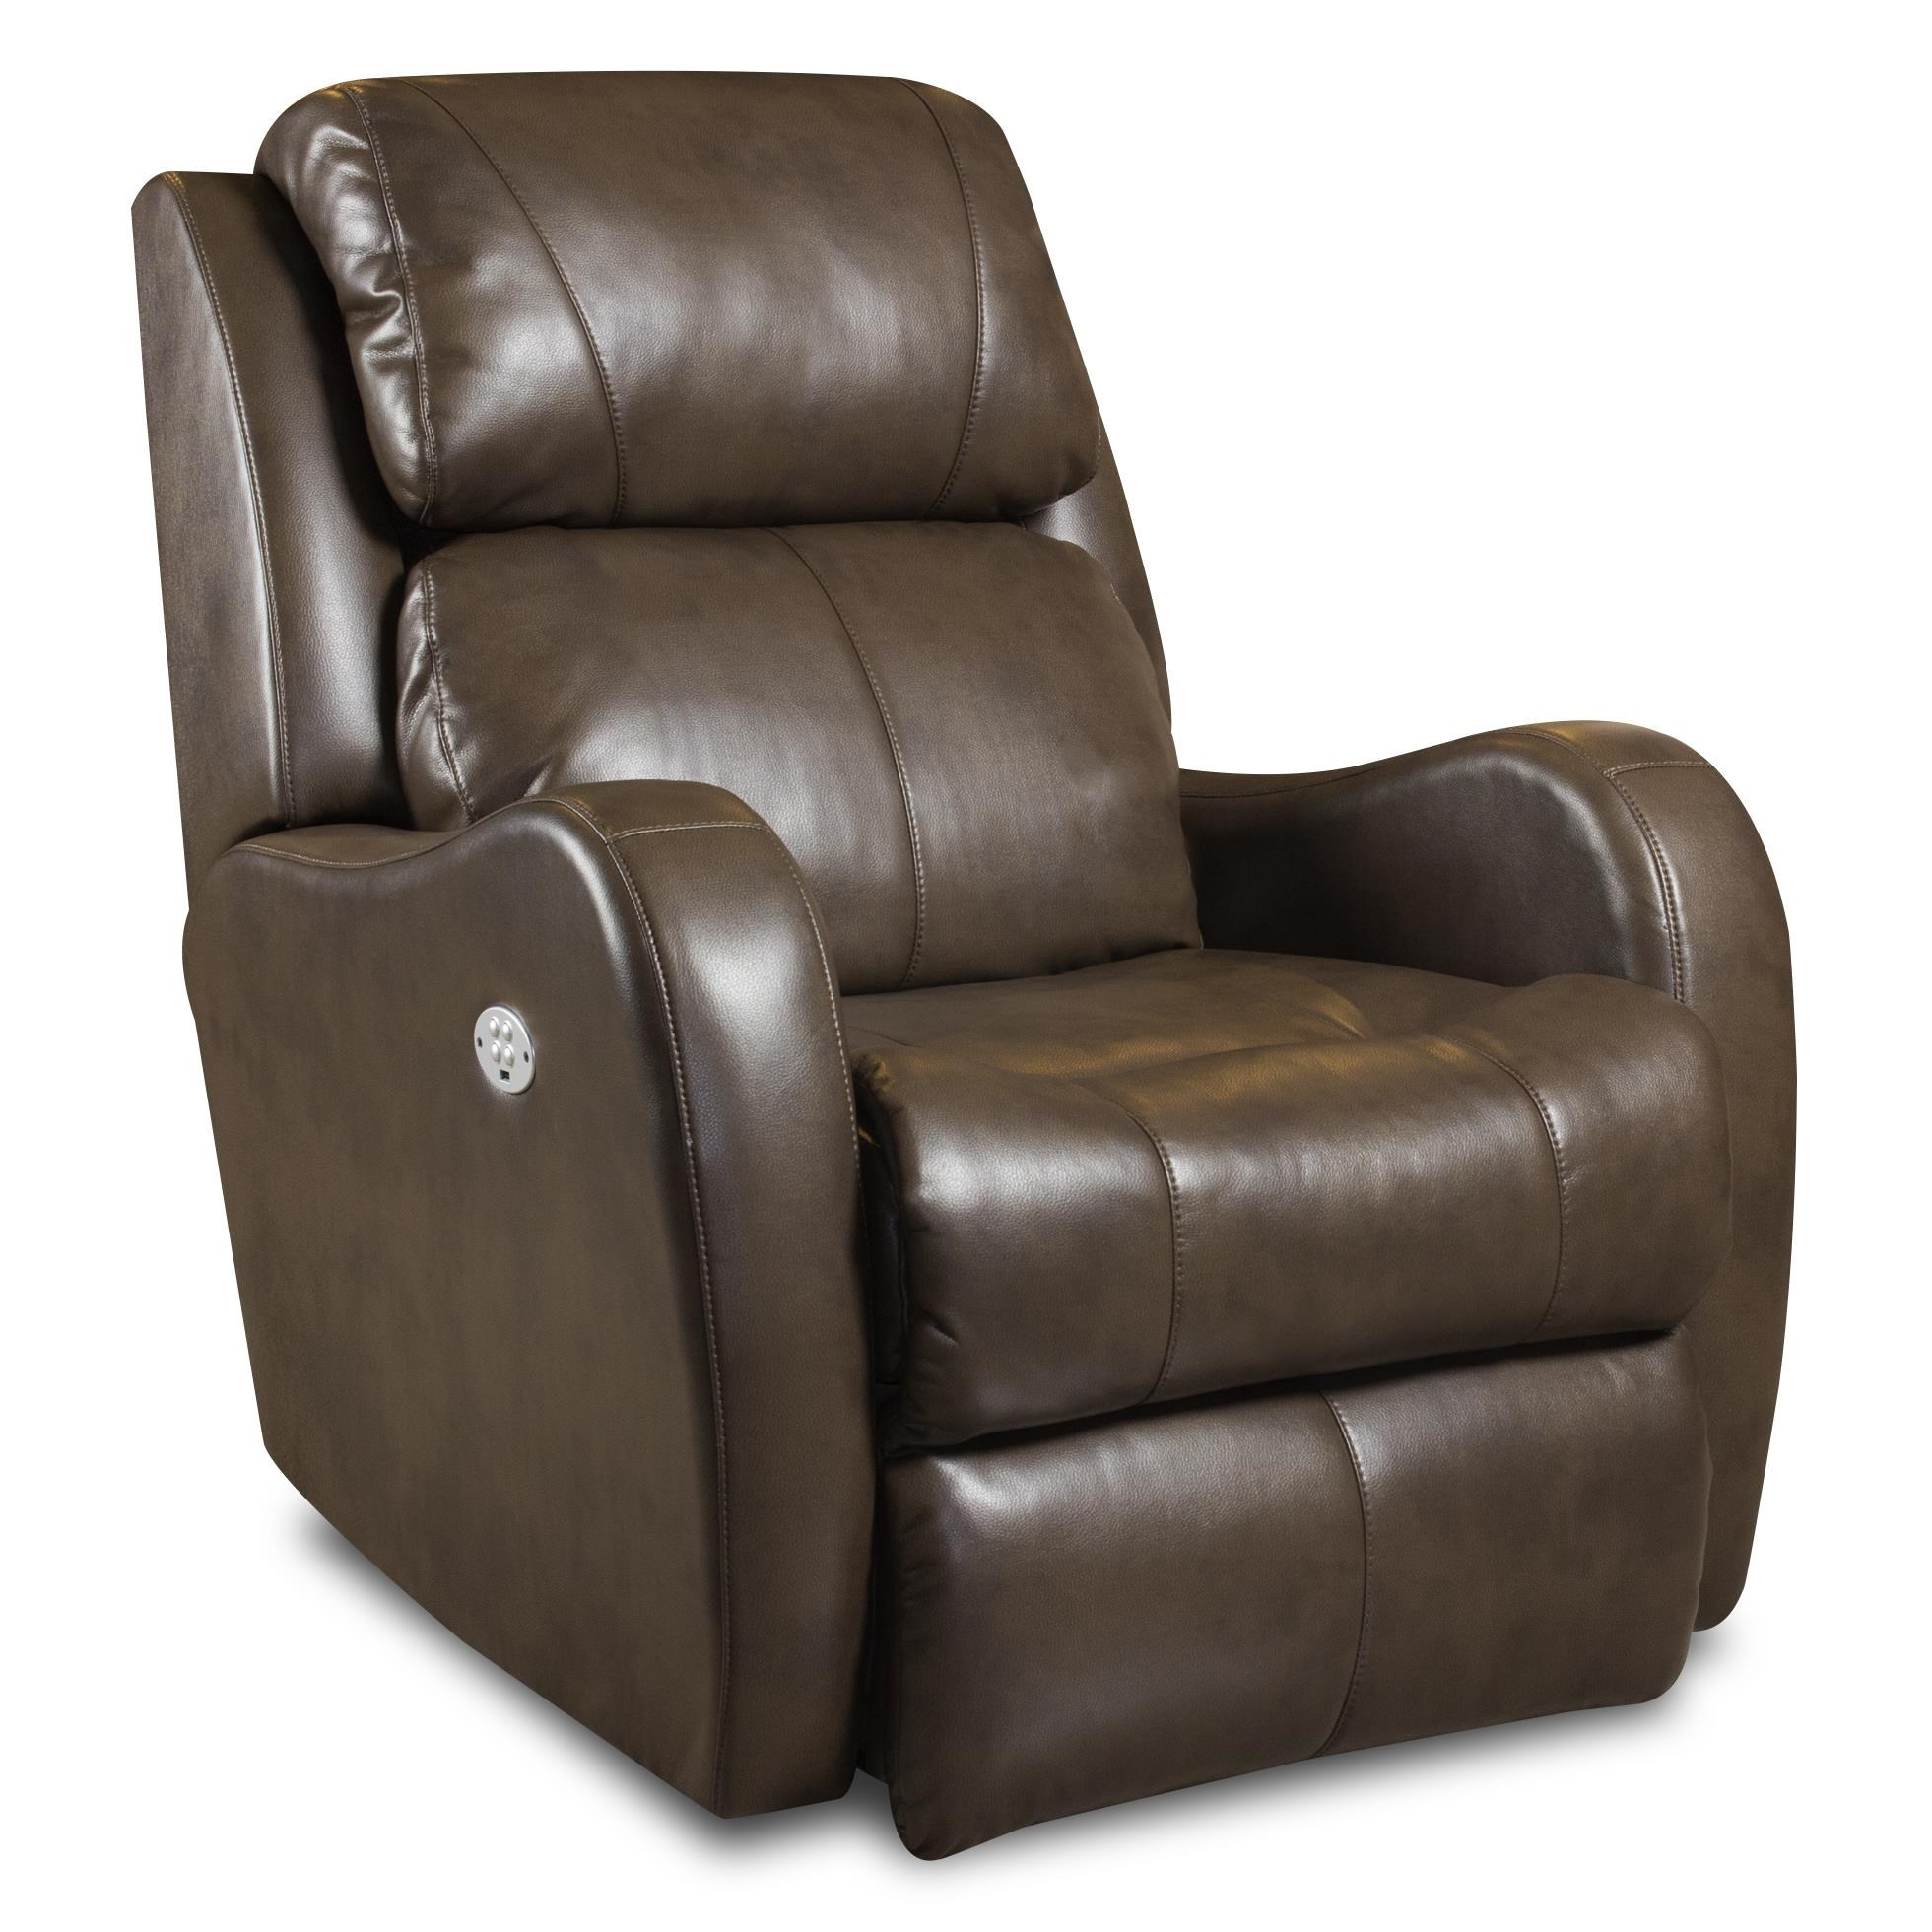 Southern Motion Recliners Siri Lay Flat Recliner With